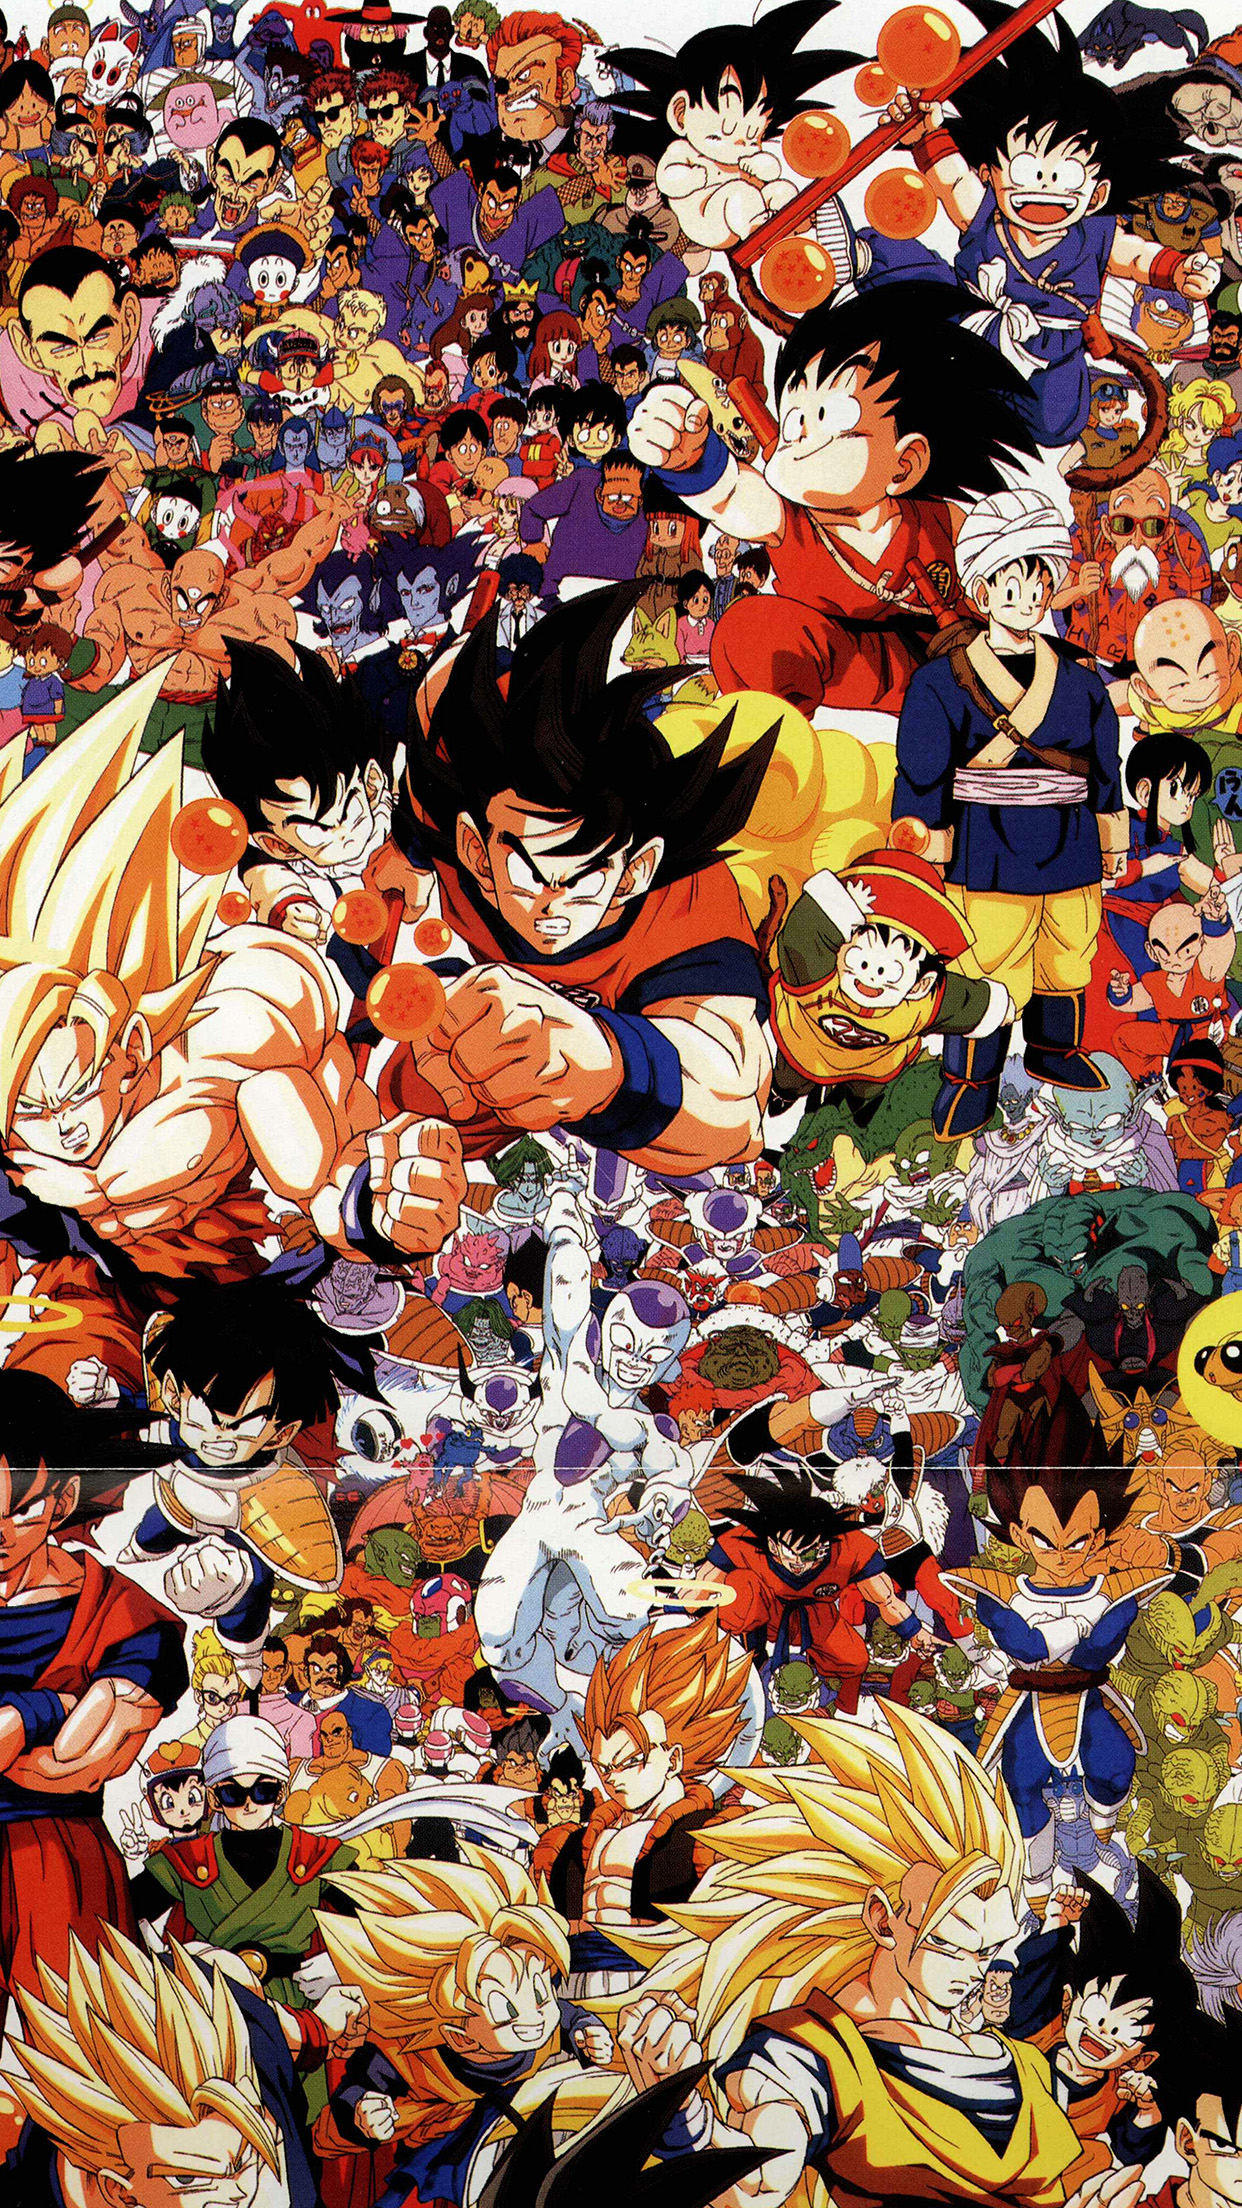 Dragonball Full Art Illust Game Anime Android Wallpaper